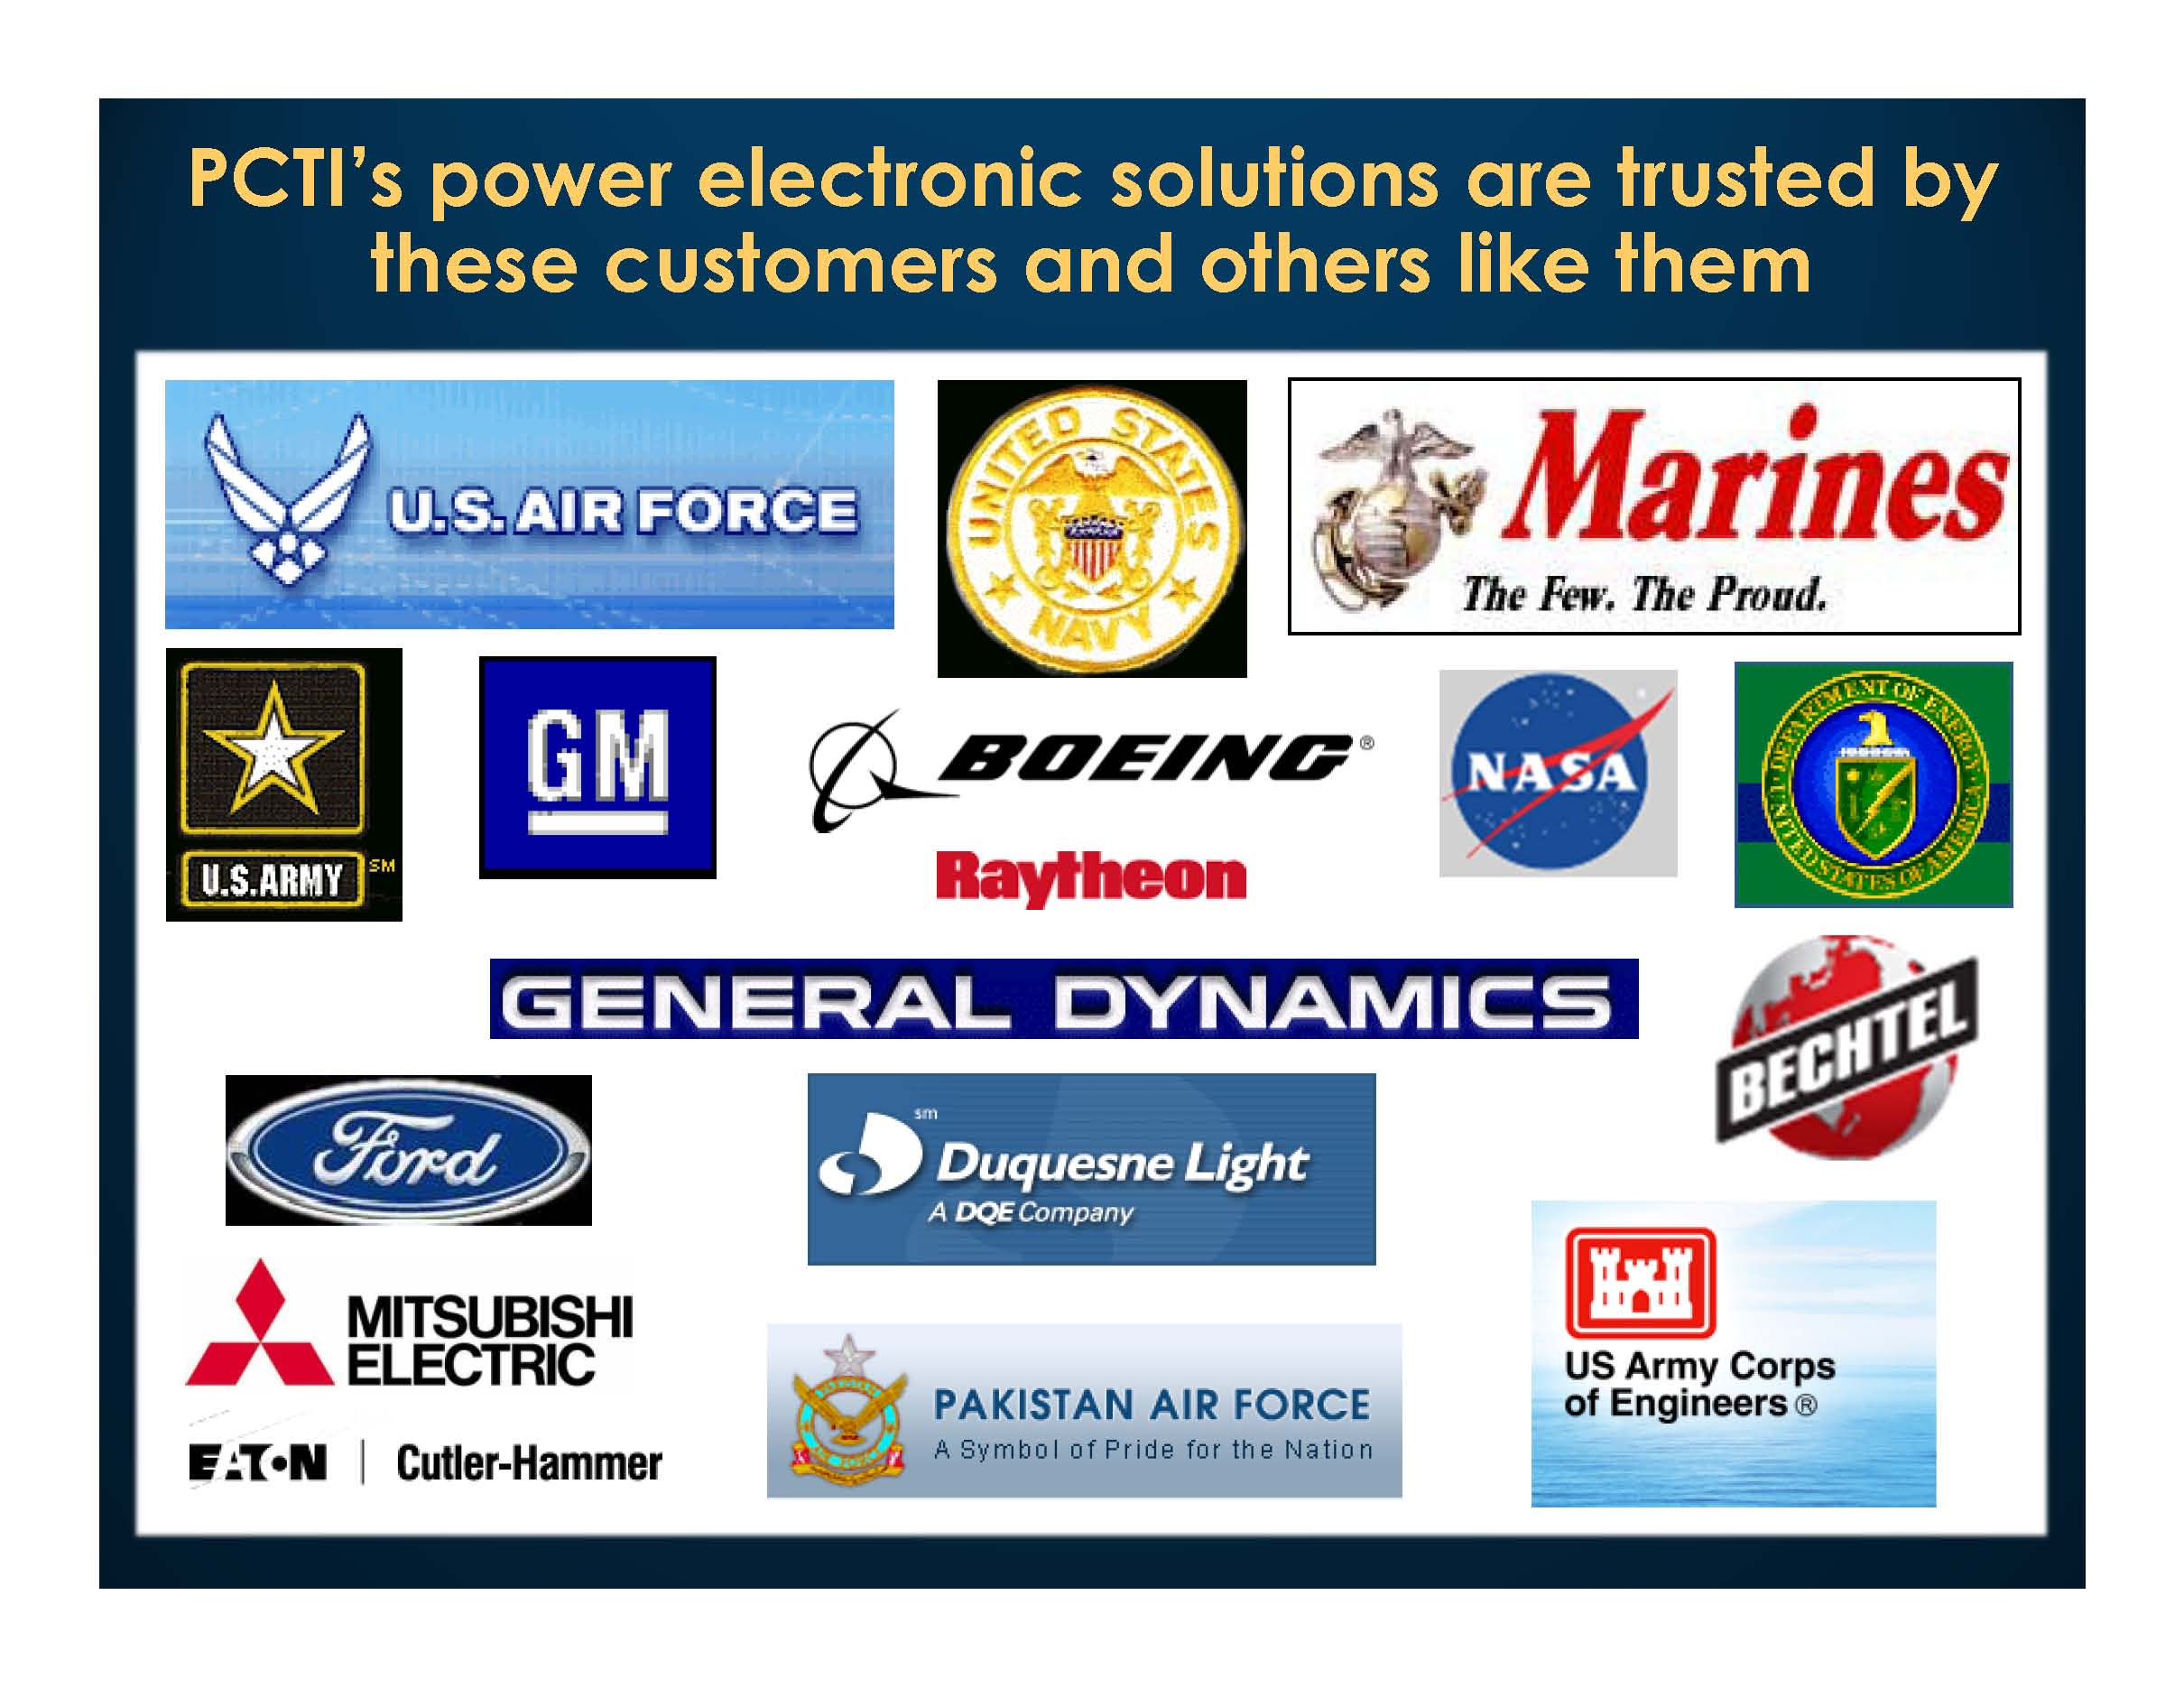 PCTI's Customers